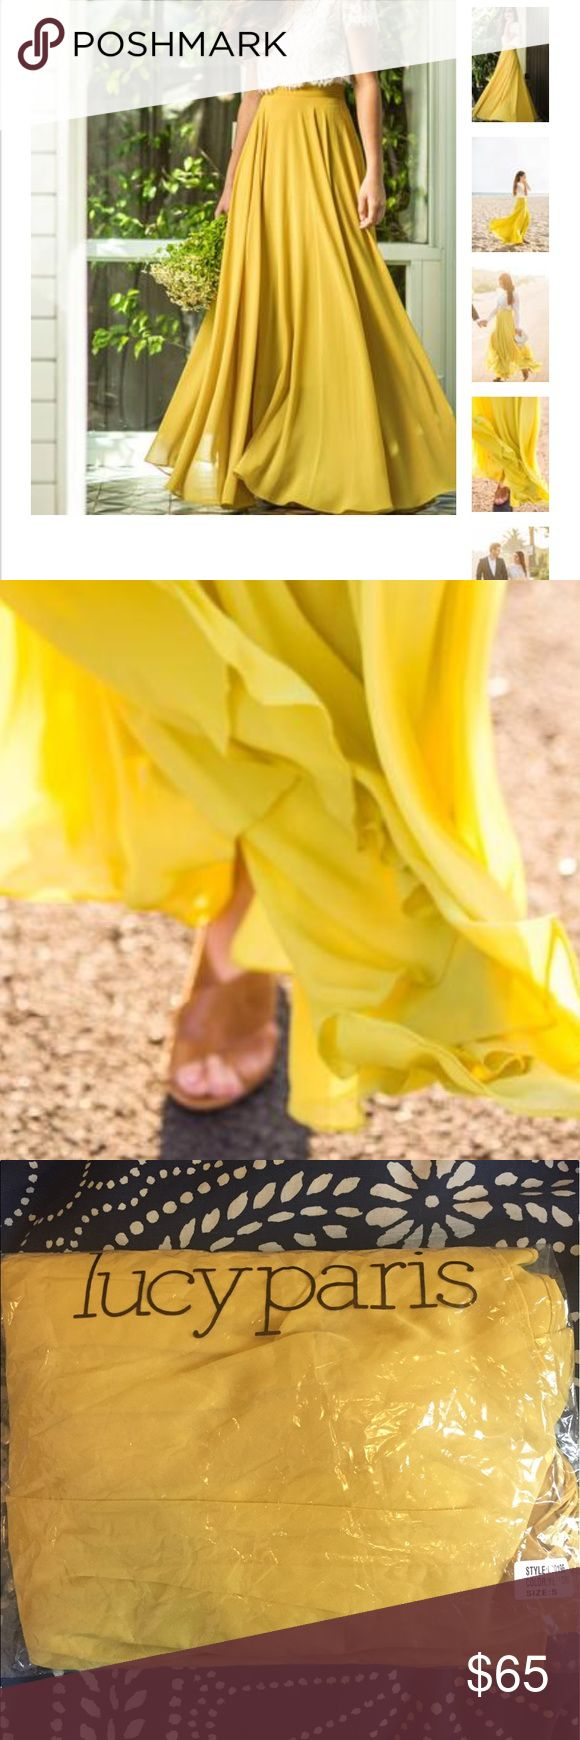 "Lucy Paris yellow maxi skirt Absolutely stunning yellow maxi skirt. High waisted, flowy, and romantic. Waist 28"" Length 44"" Skirts Maxi"